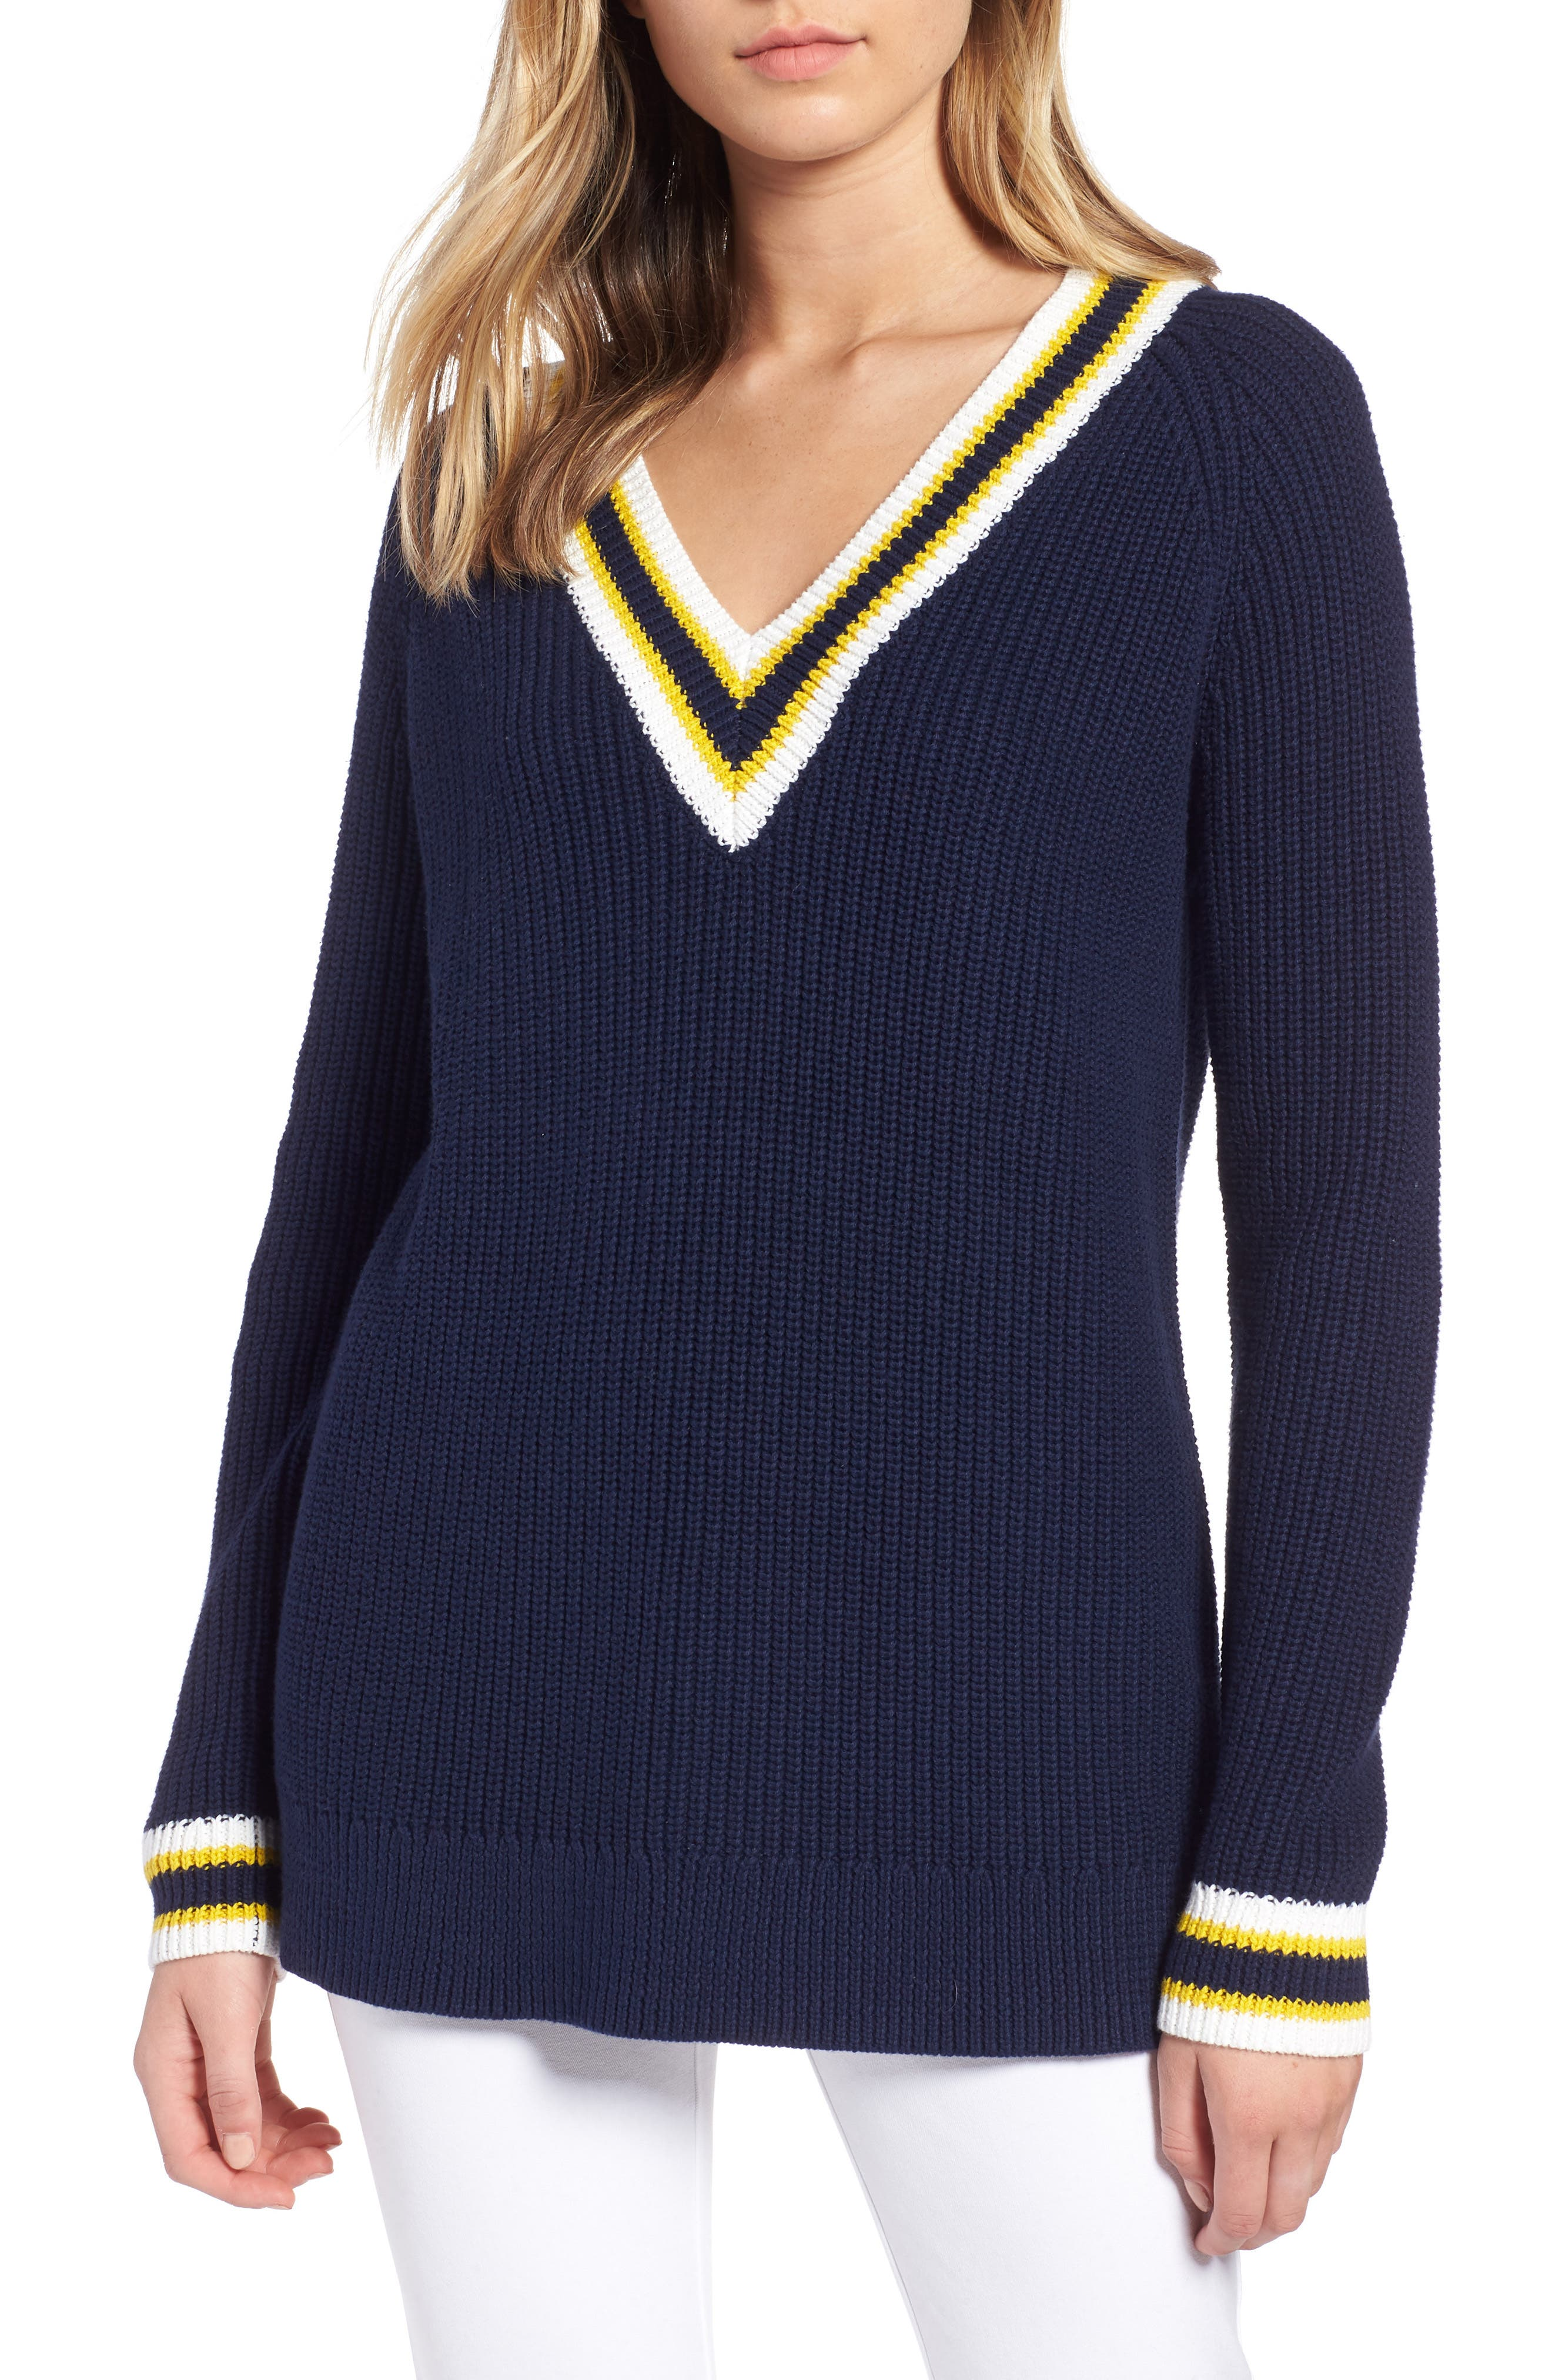 Tennis Sweater,                             Main thumbnail 1, color,                             410